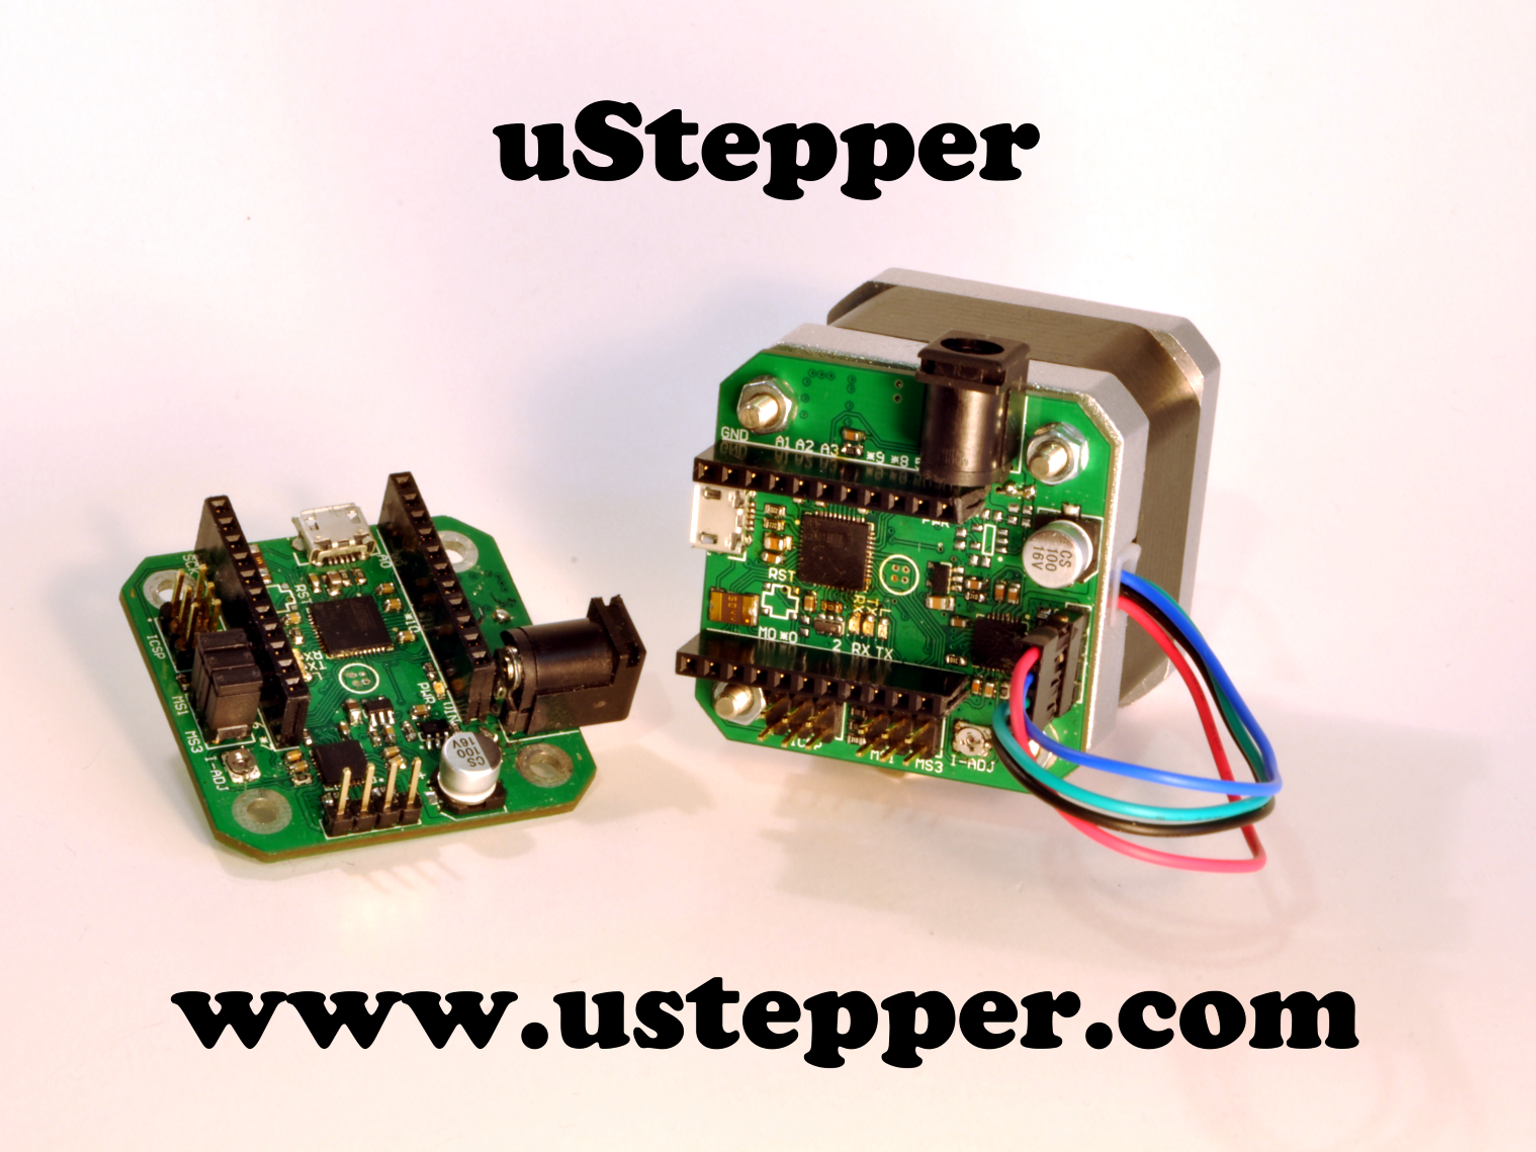 uStepper incorporates microcontroller, stepper driver and